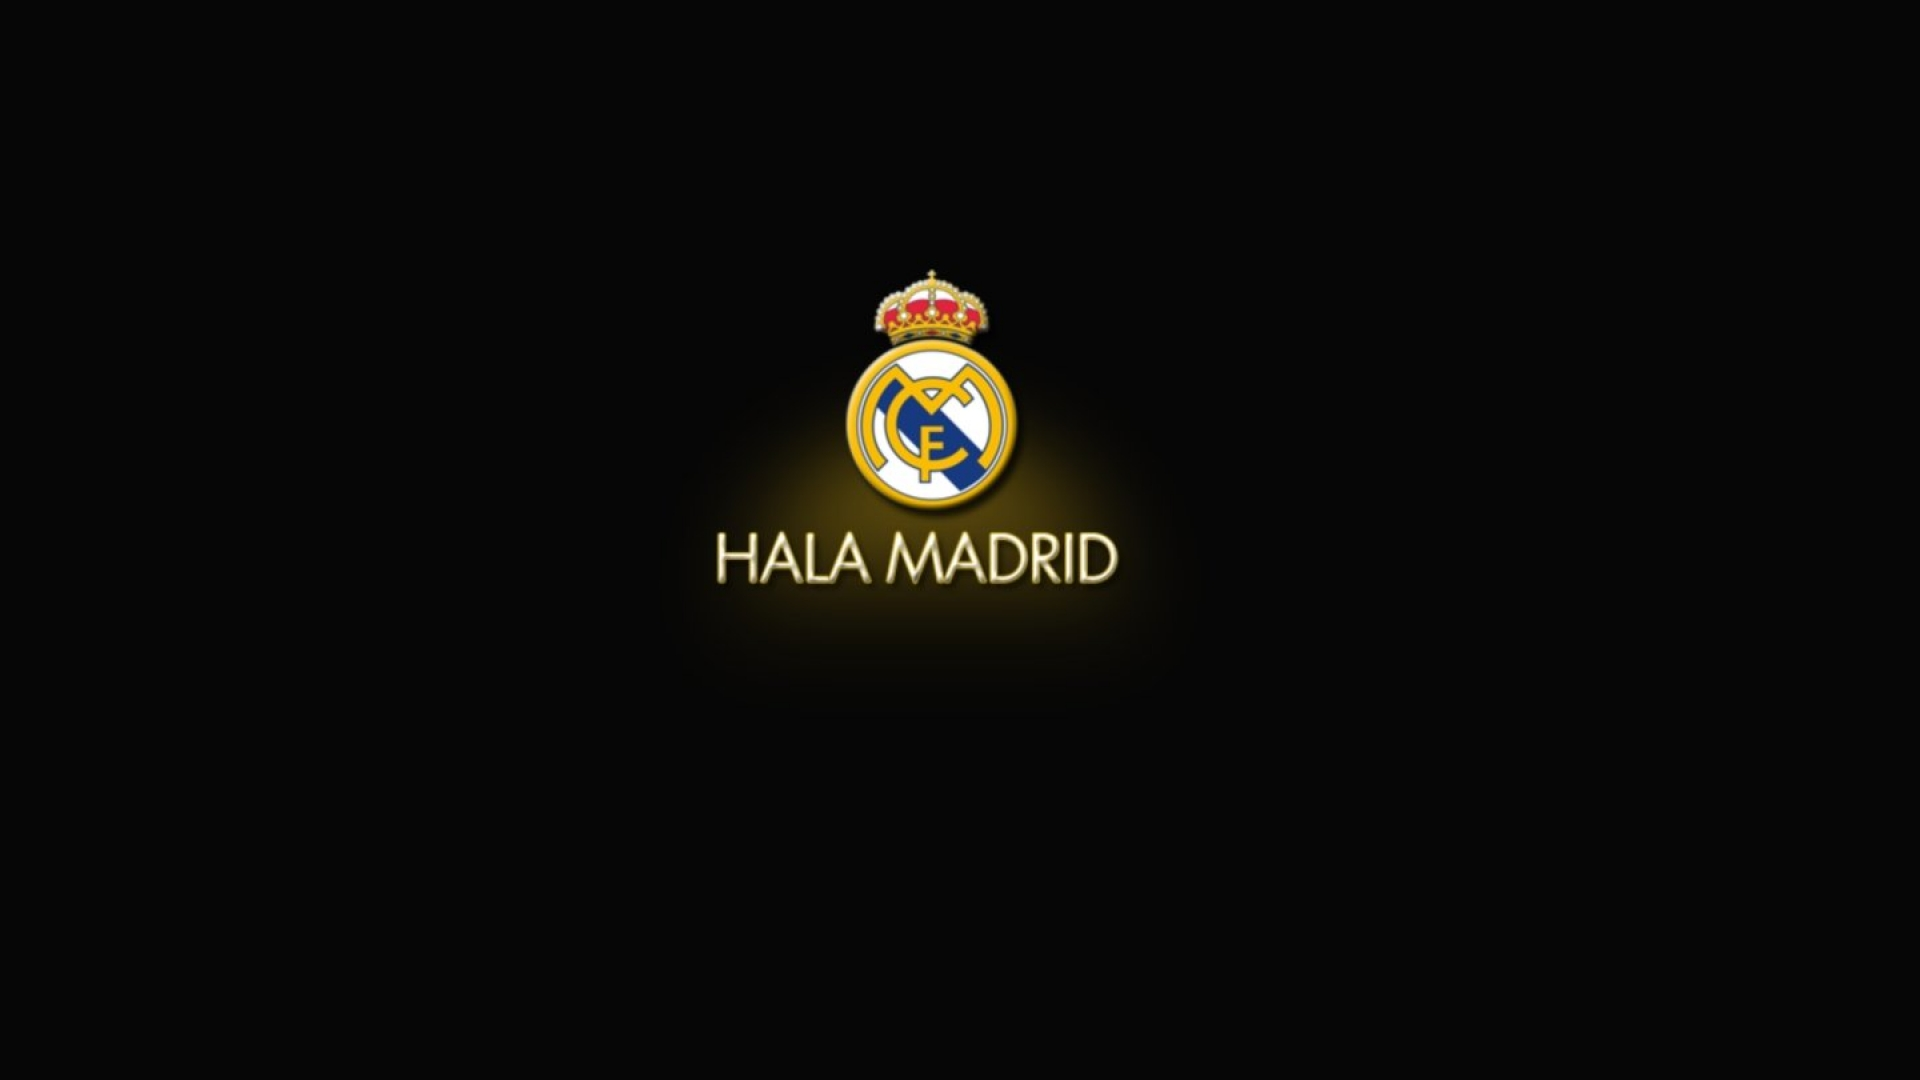 Real Madrid Black Wallpaper Hd Wallpapers